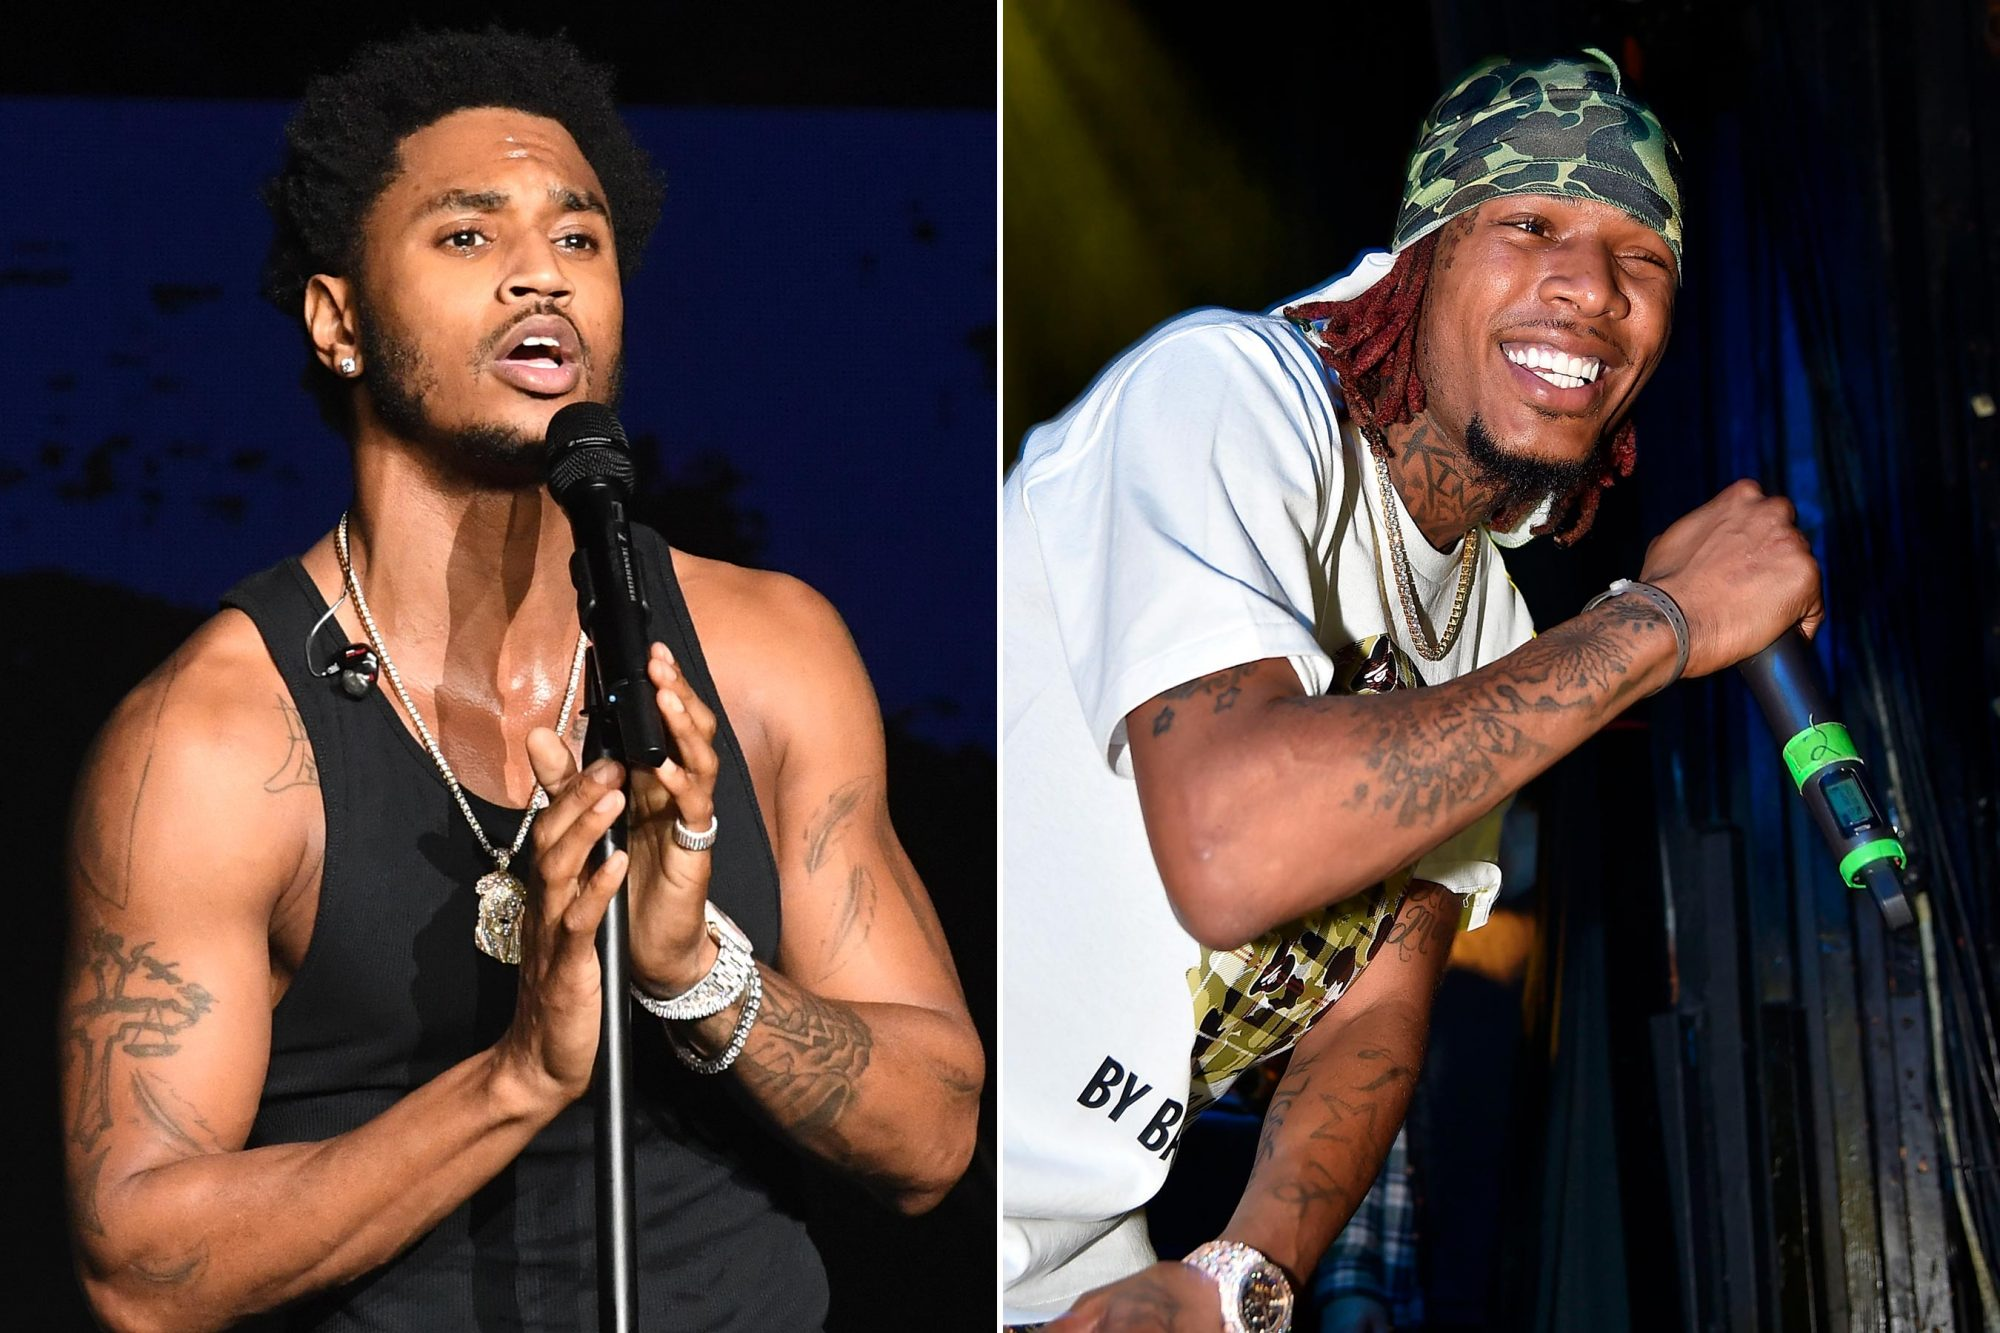 Trey-Songz-Fetty-Wap